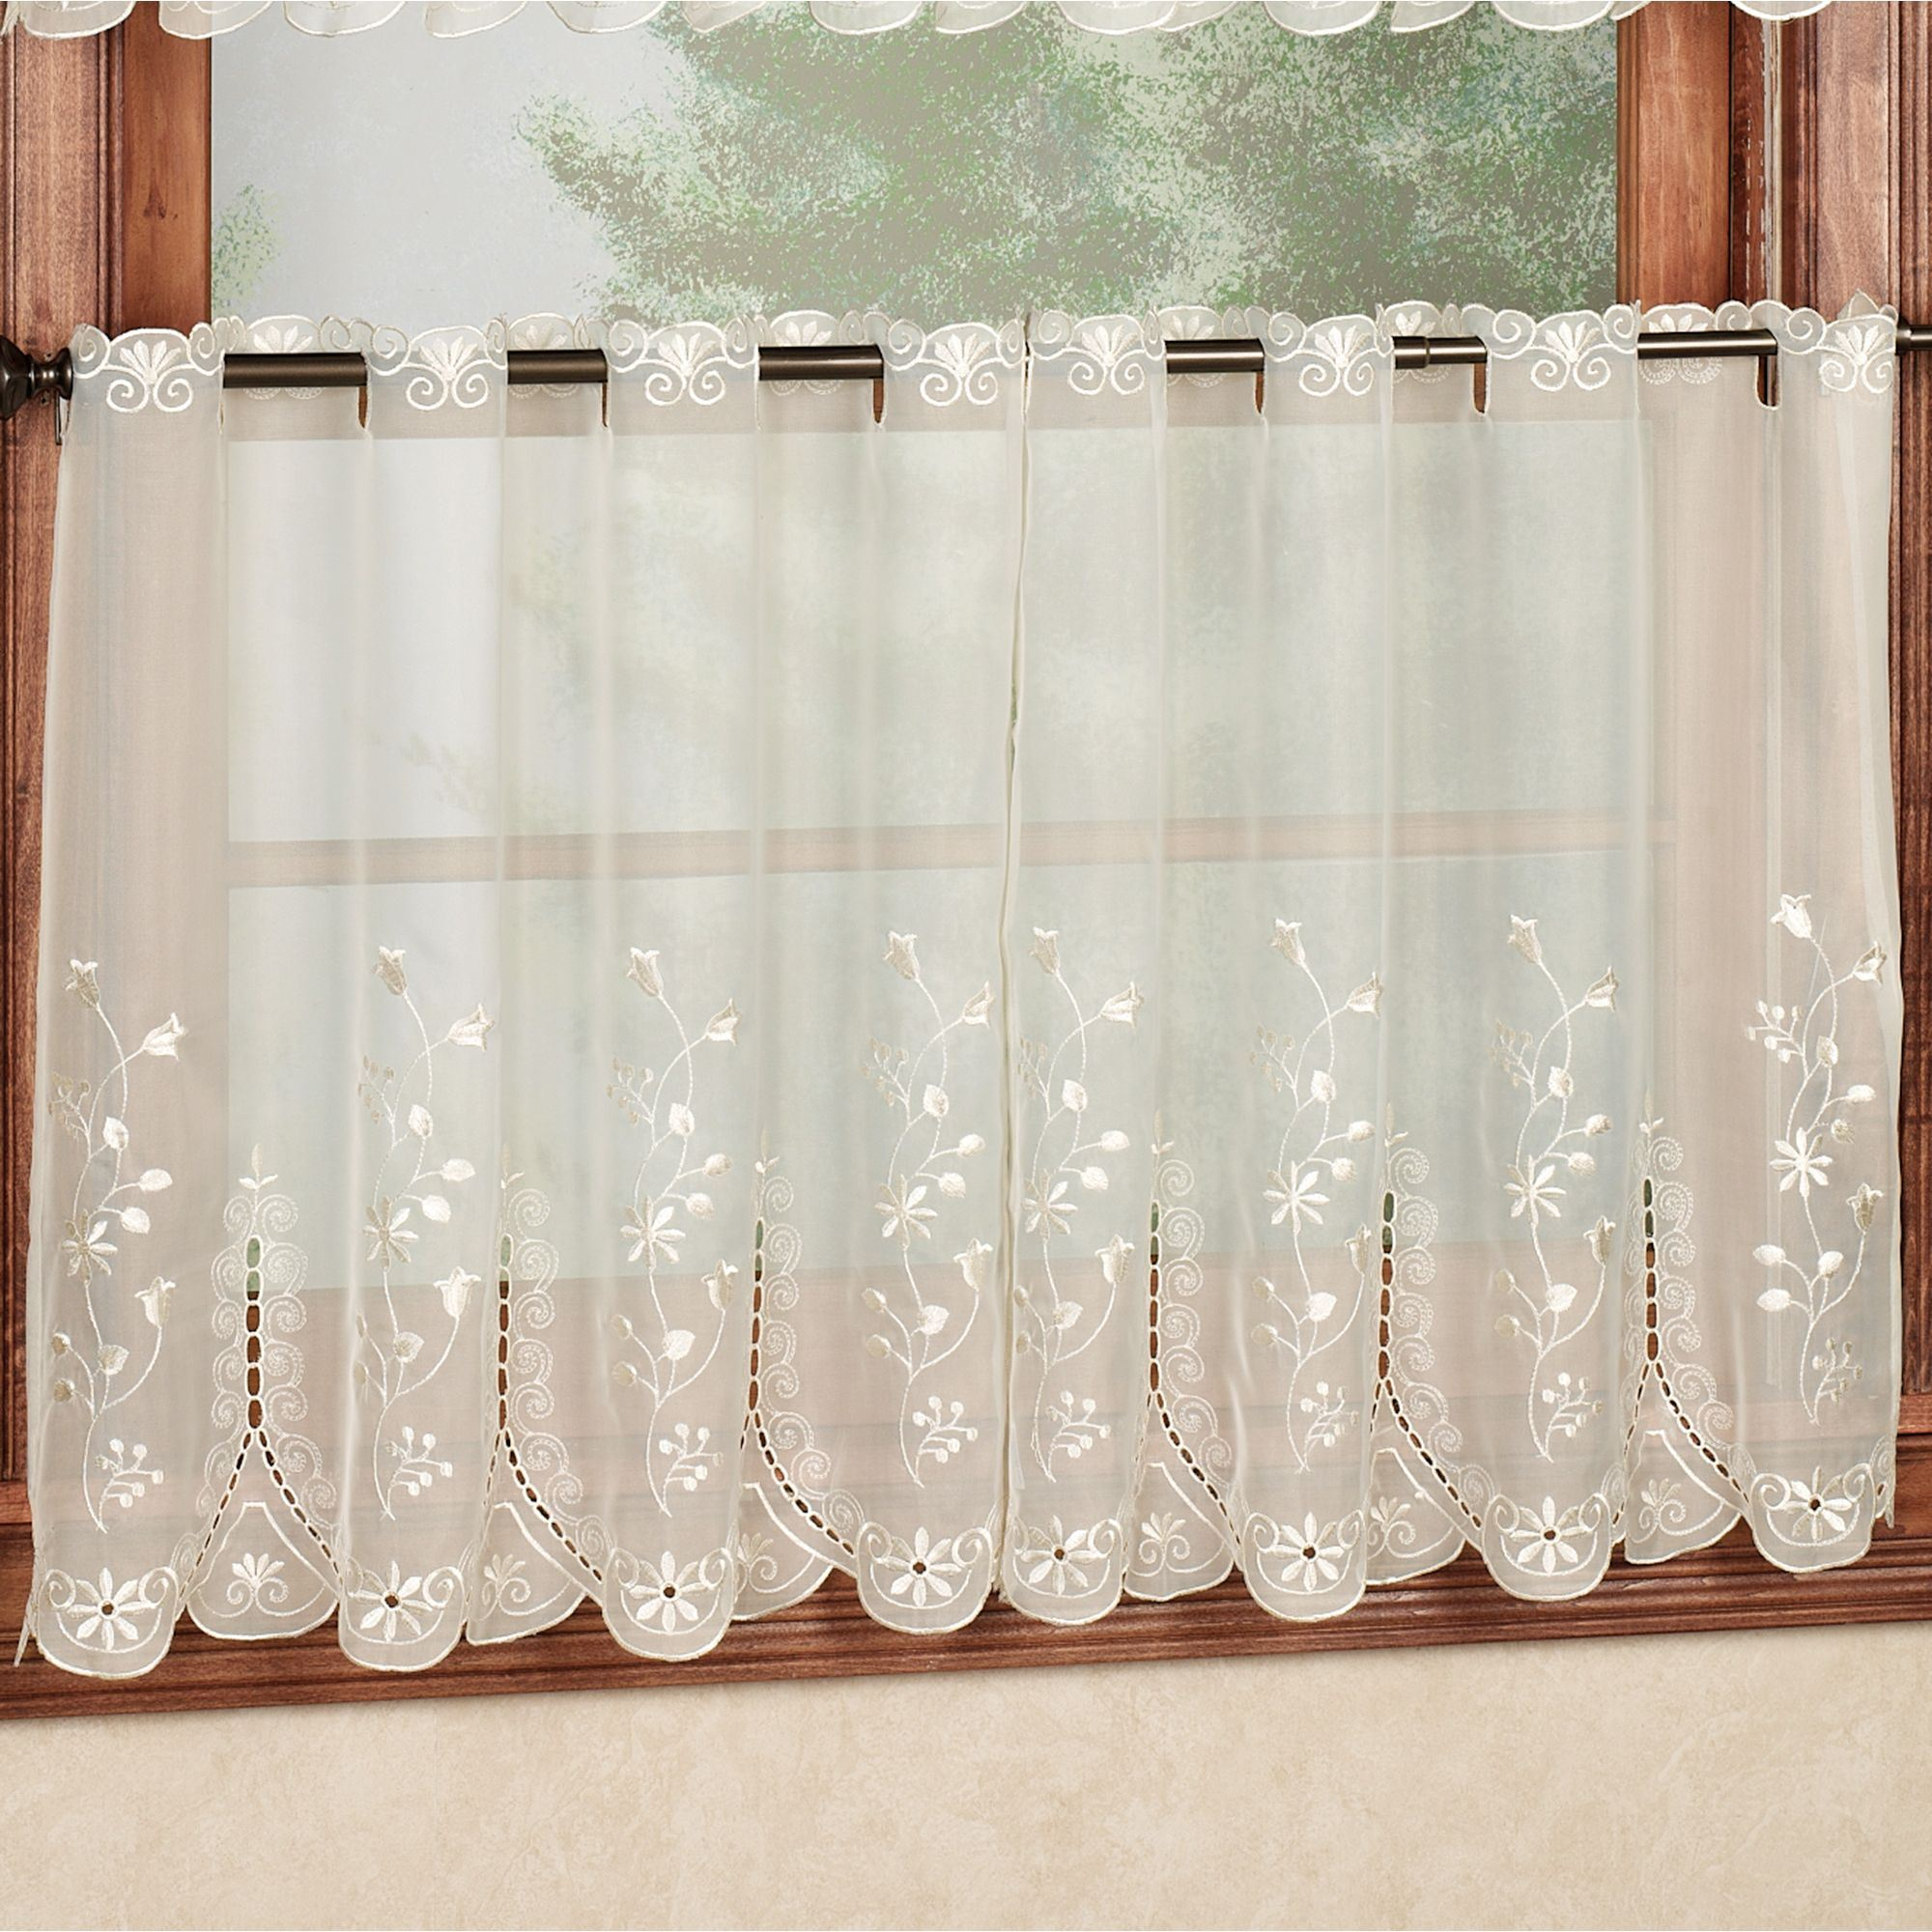 inspiration and for decoration incredible waverly curtains concept cafe of files sheer kitchen